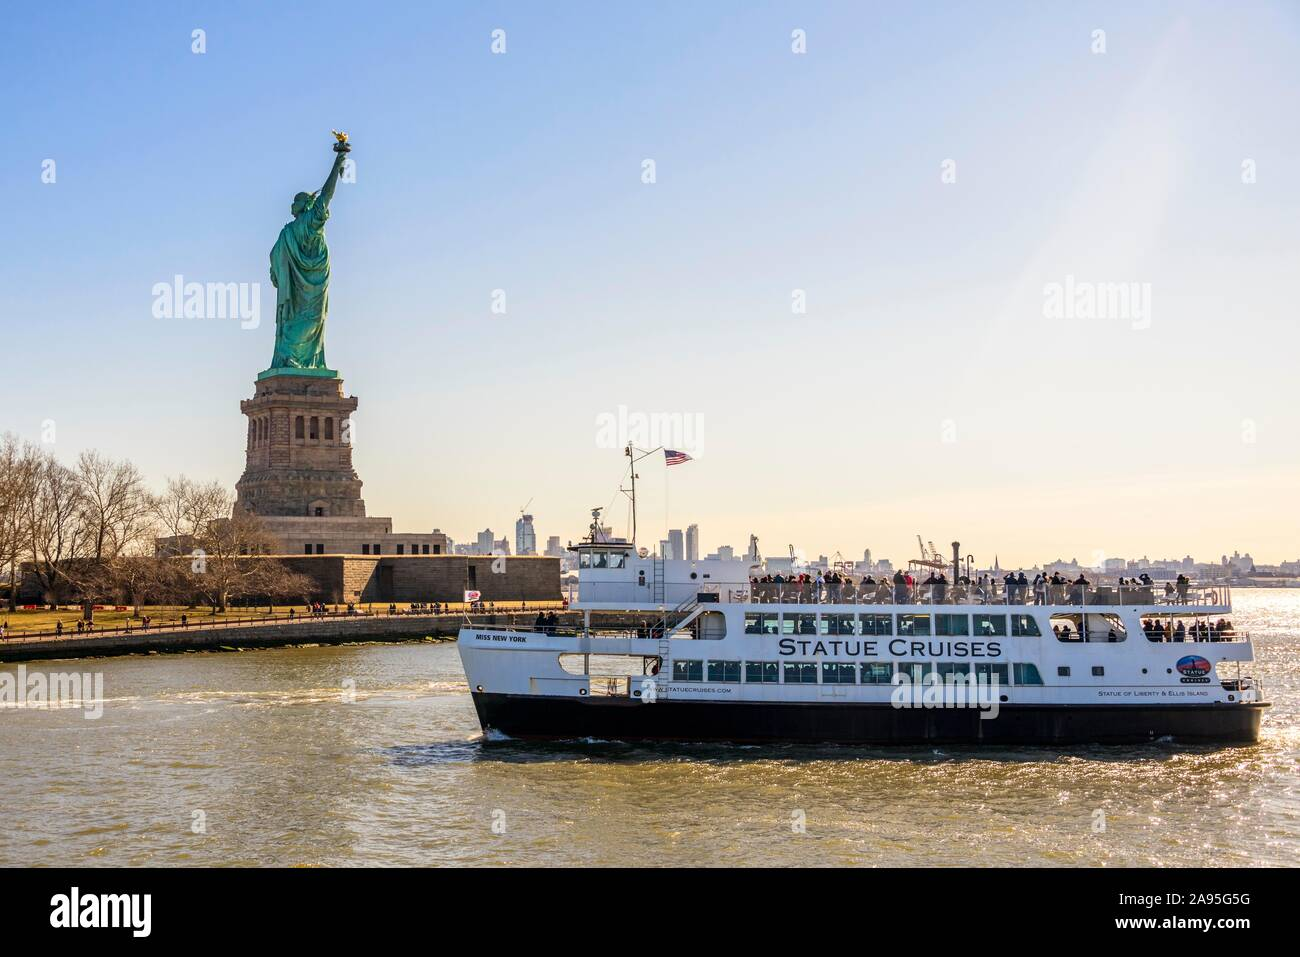 Statue Of Liberty With Passenger Boat Statue Of Liberty